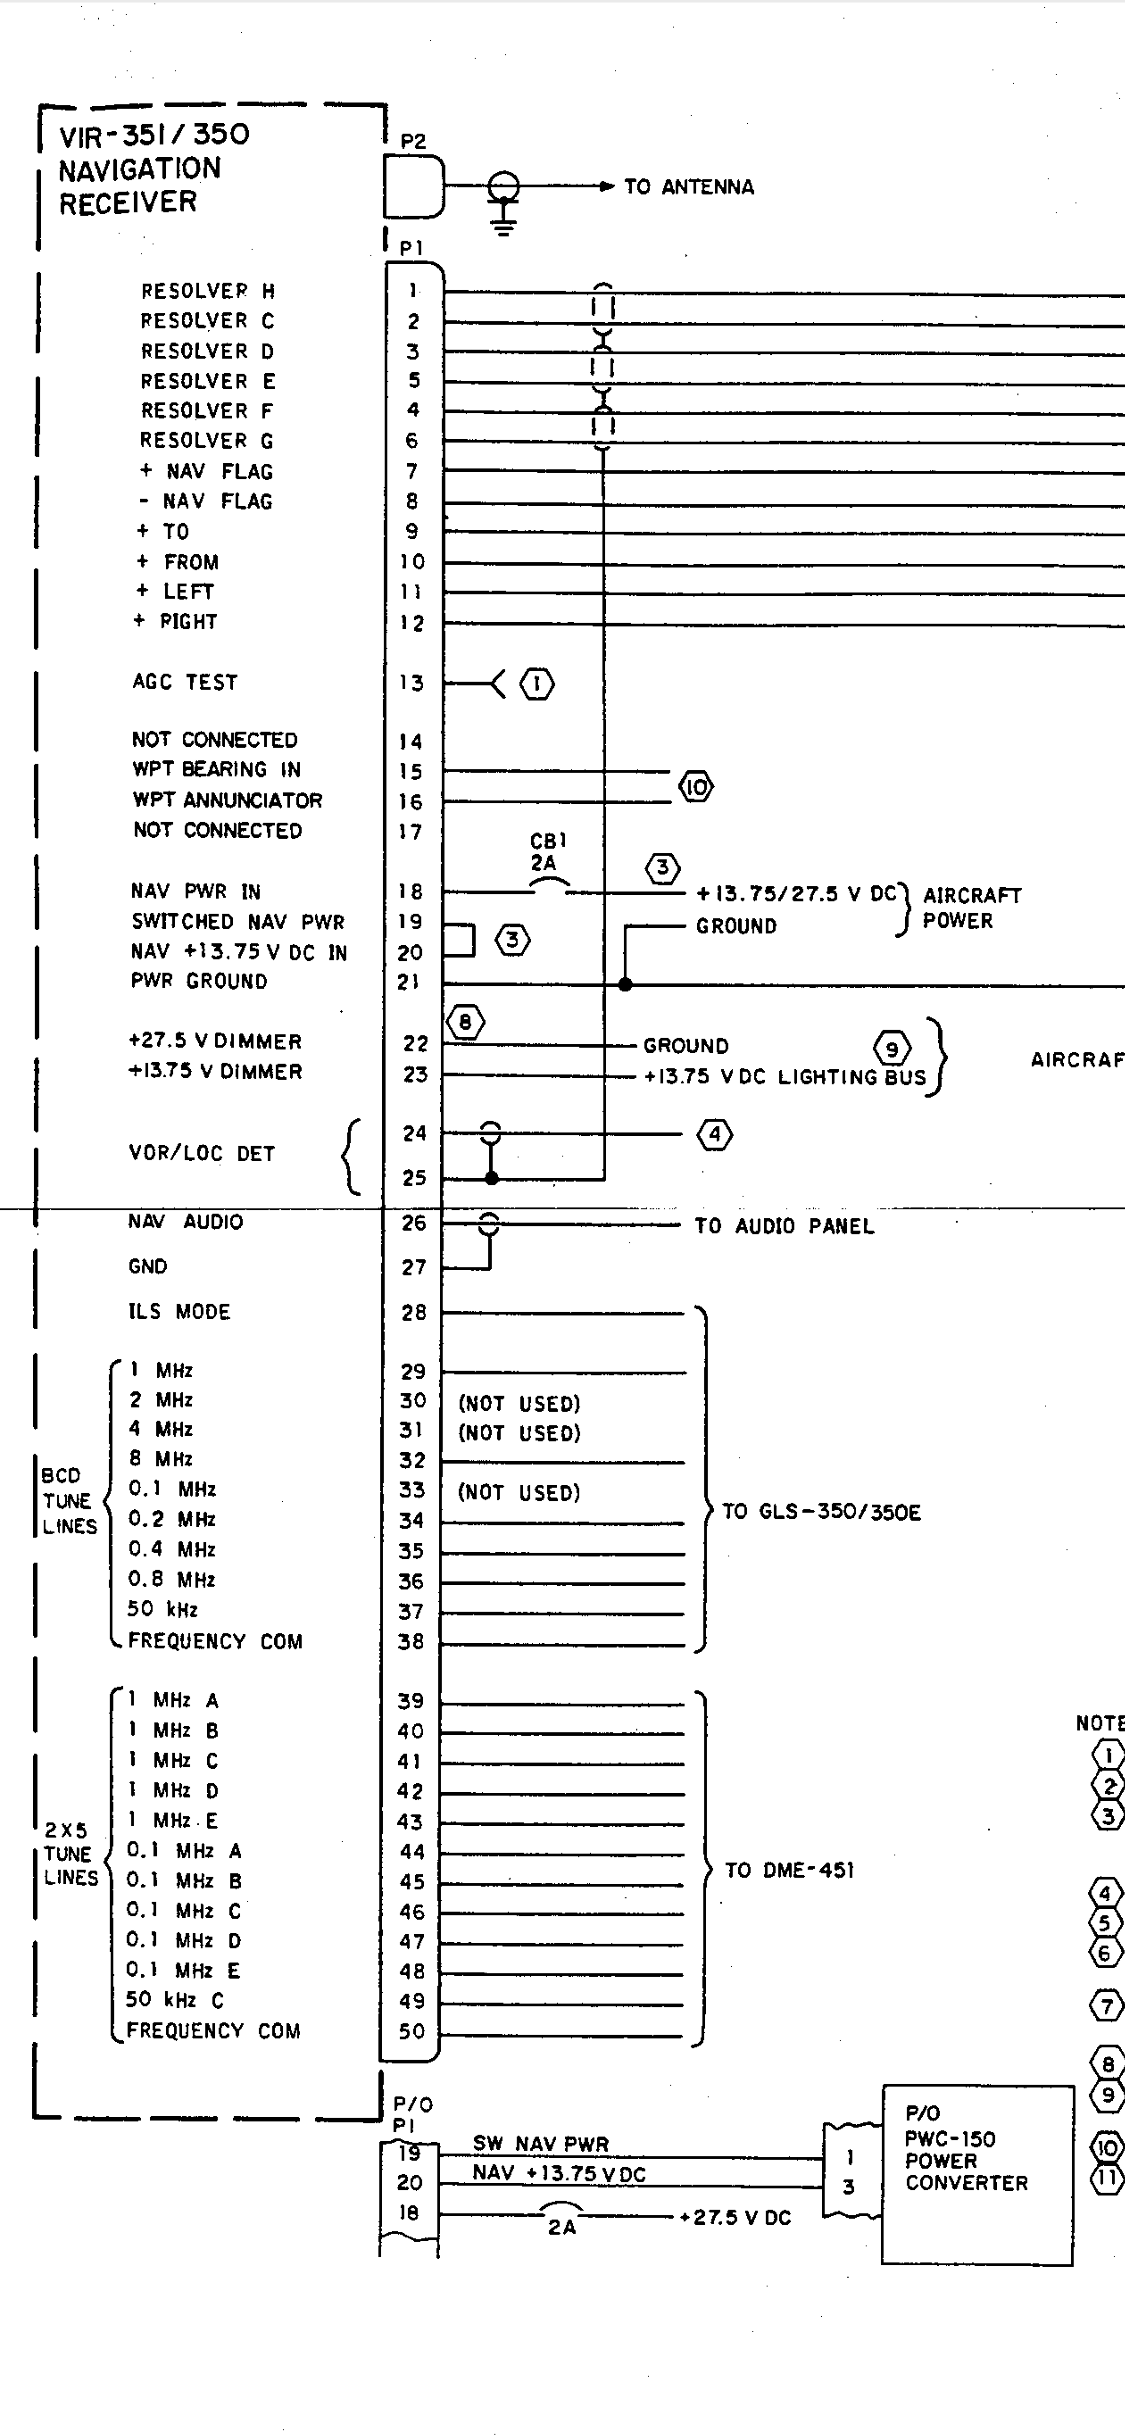 Collins Gls350 Wiring Diagram    Installation Manual - Avionics  Panel Discussion